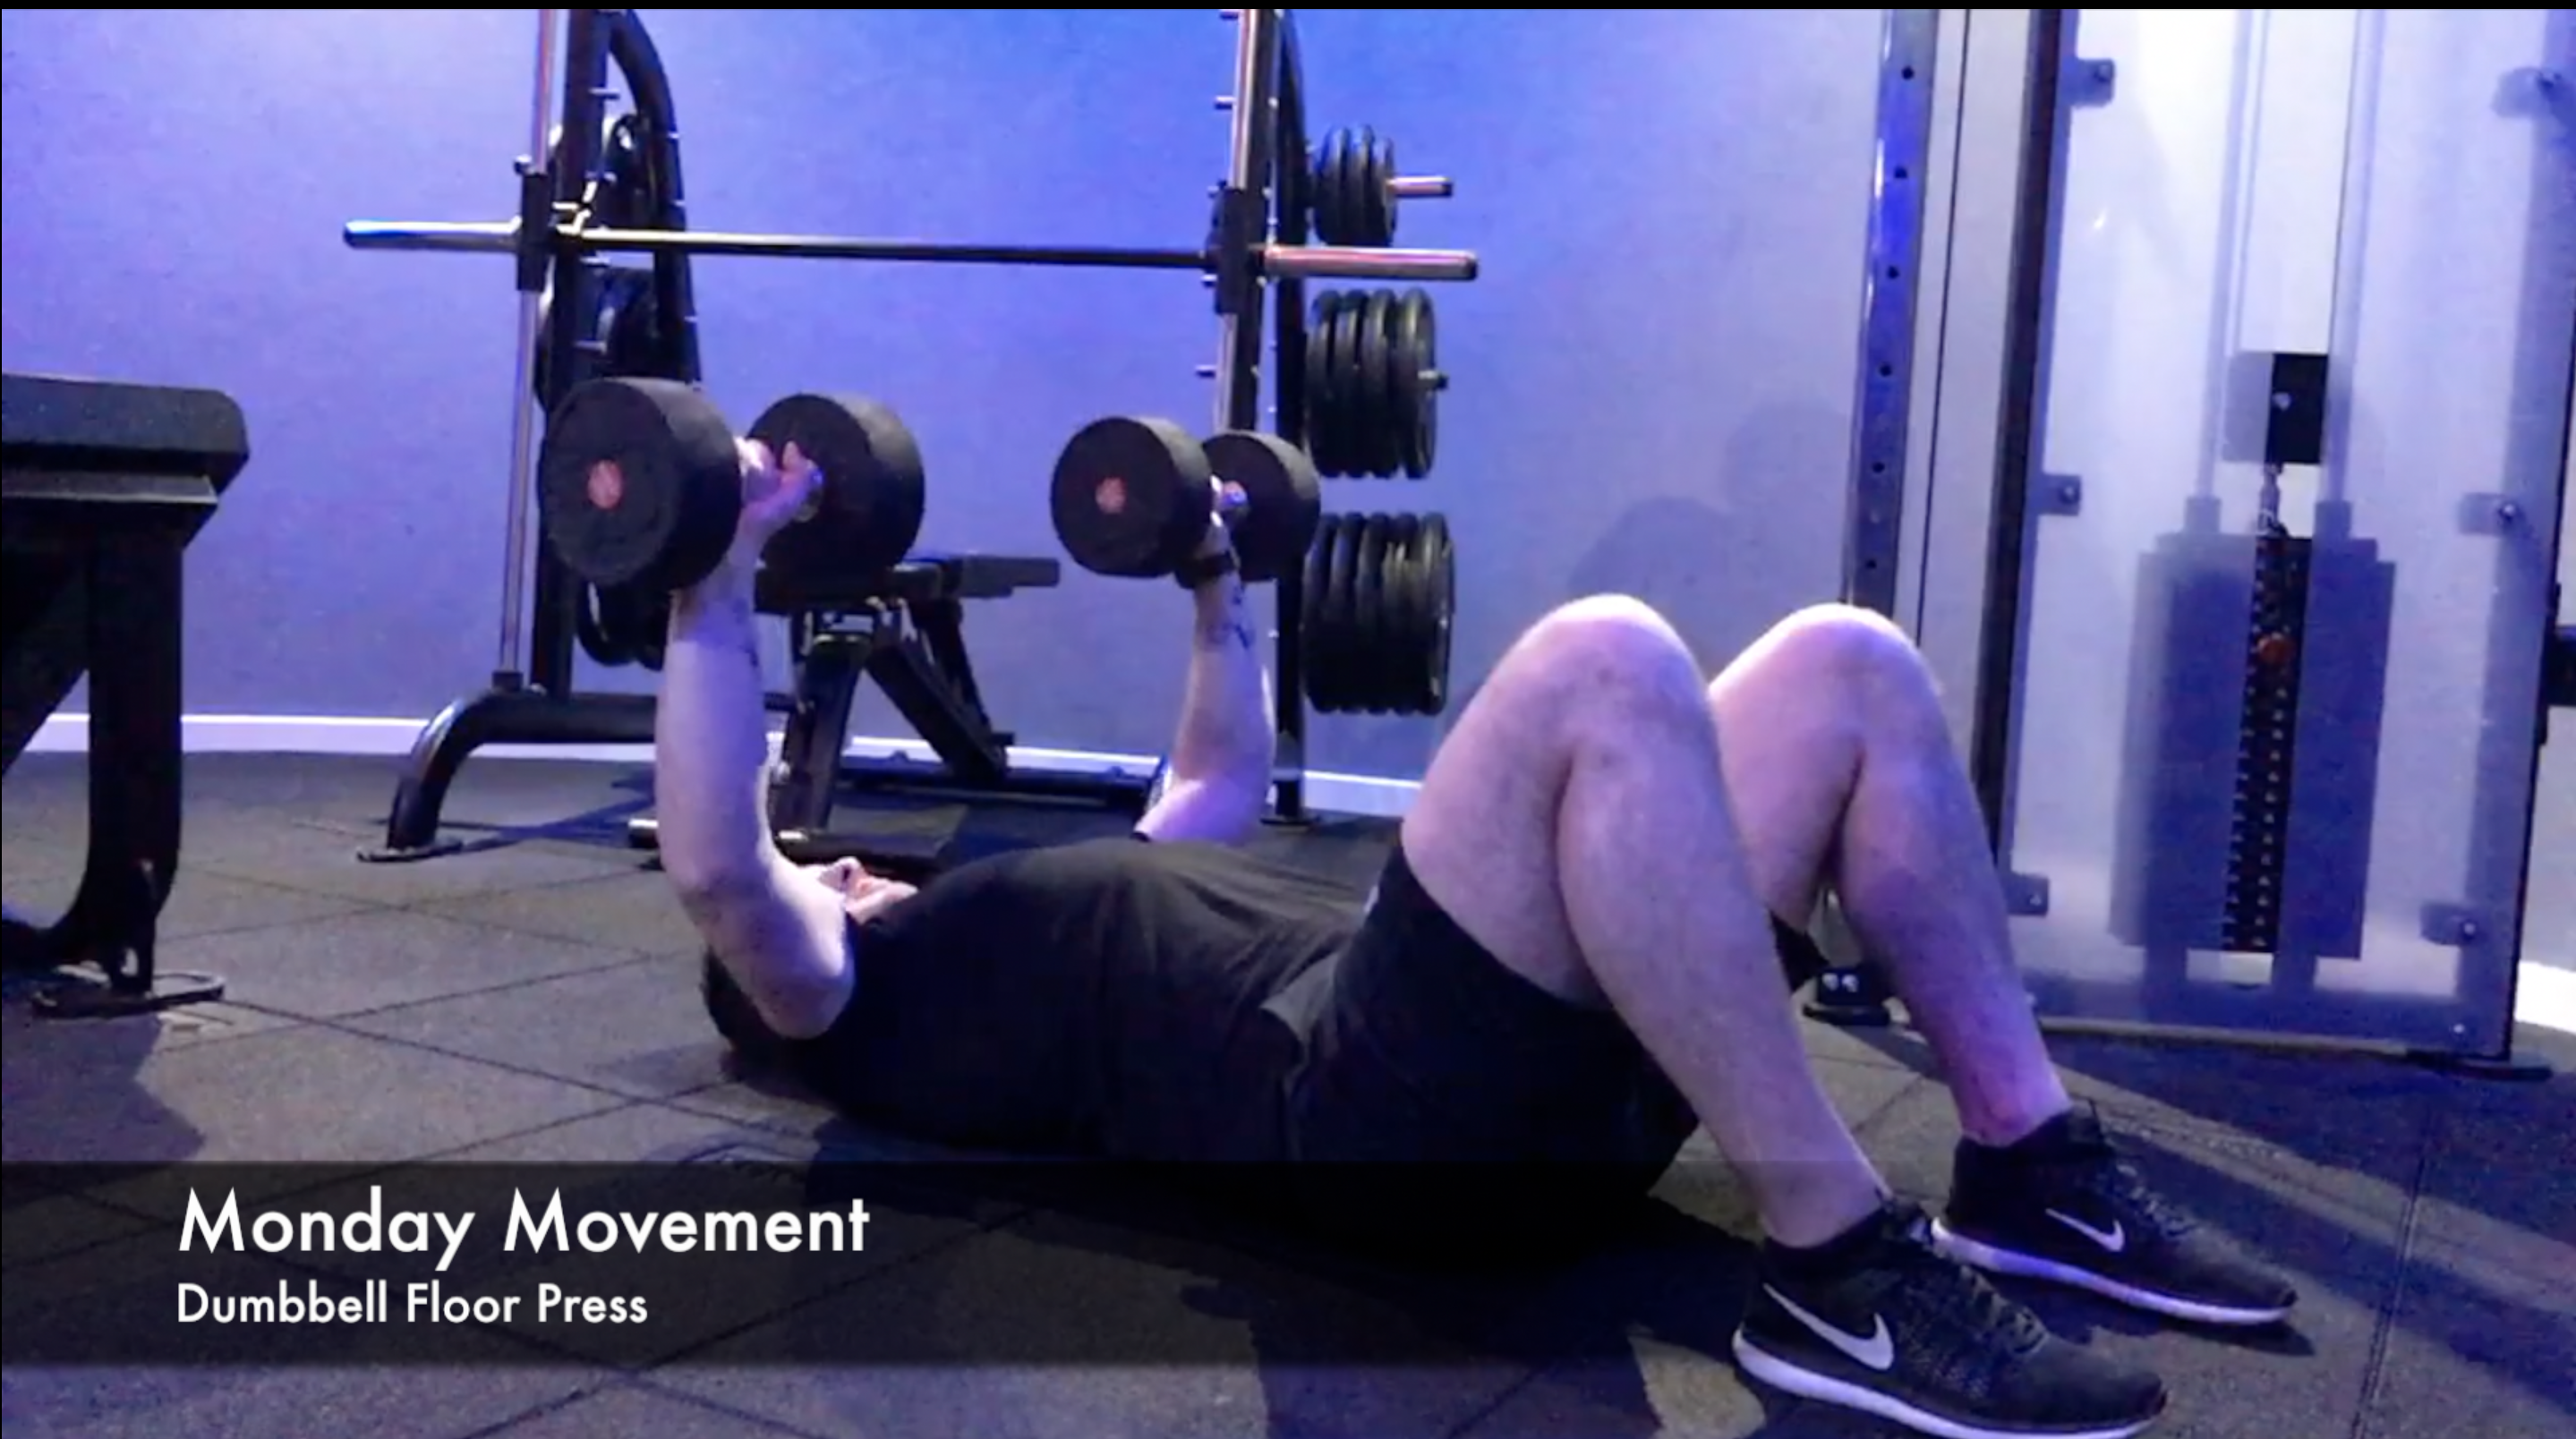 Monday Movement - Dumbbell Floor Press